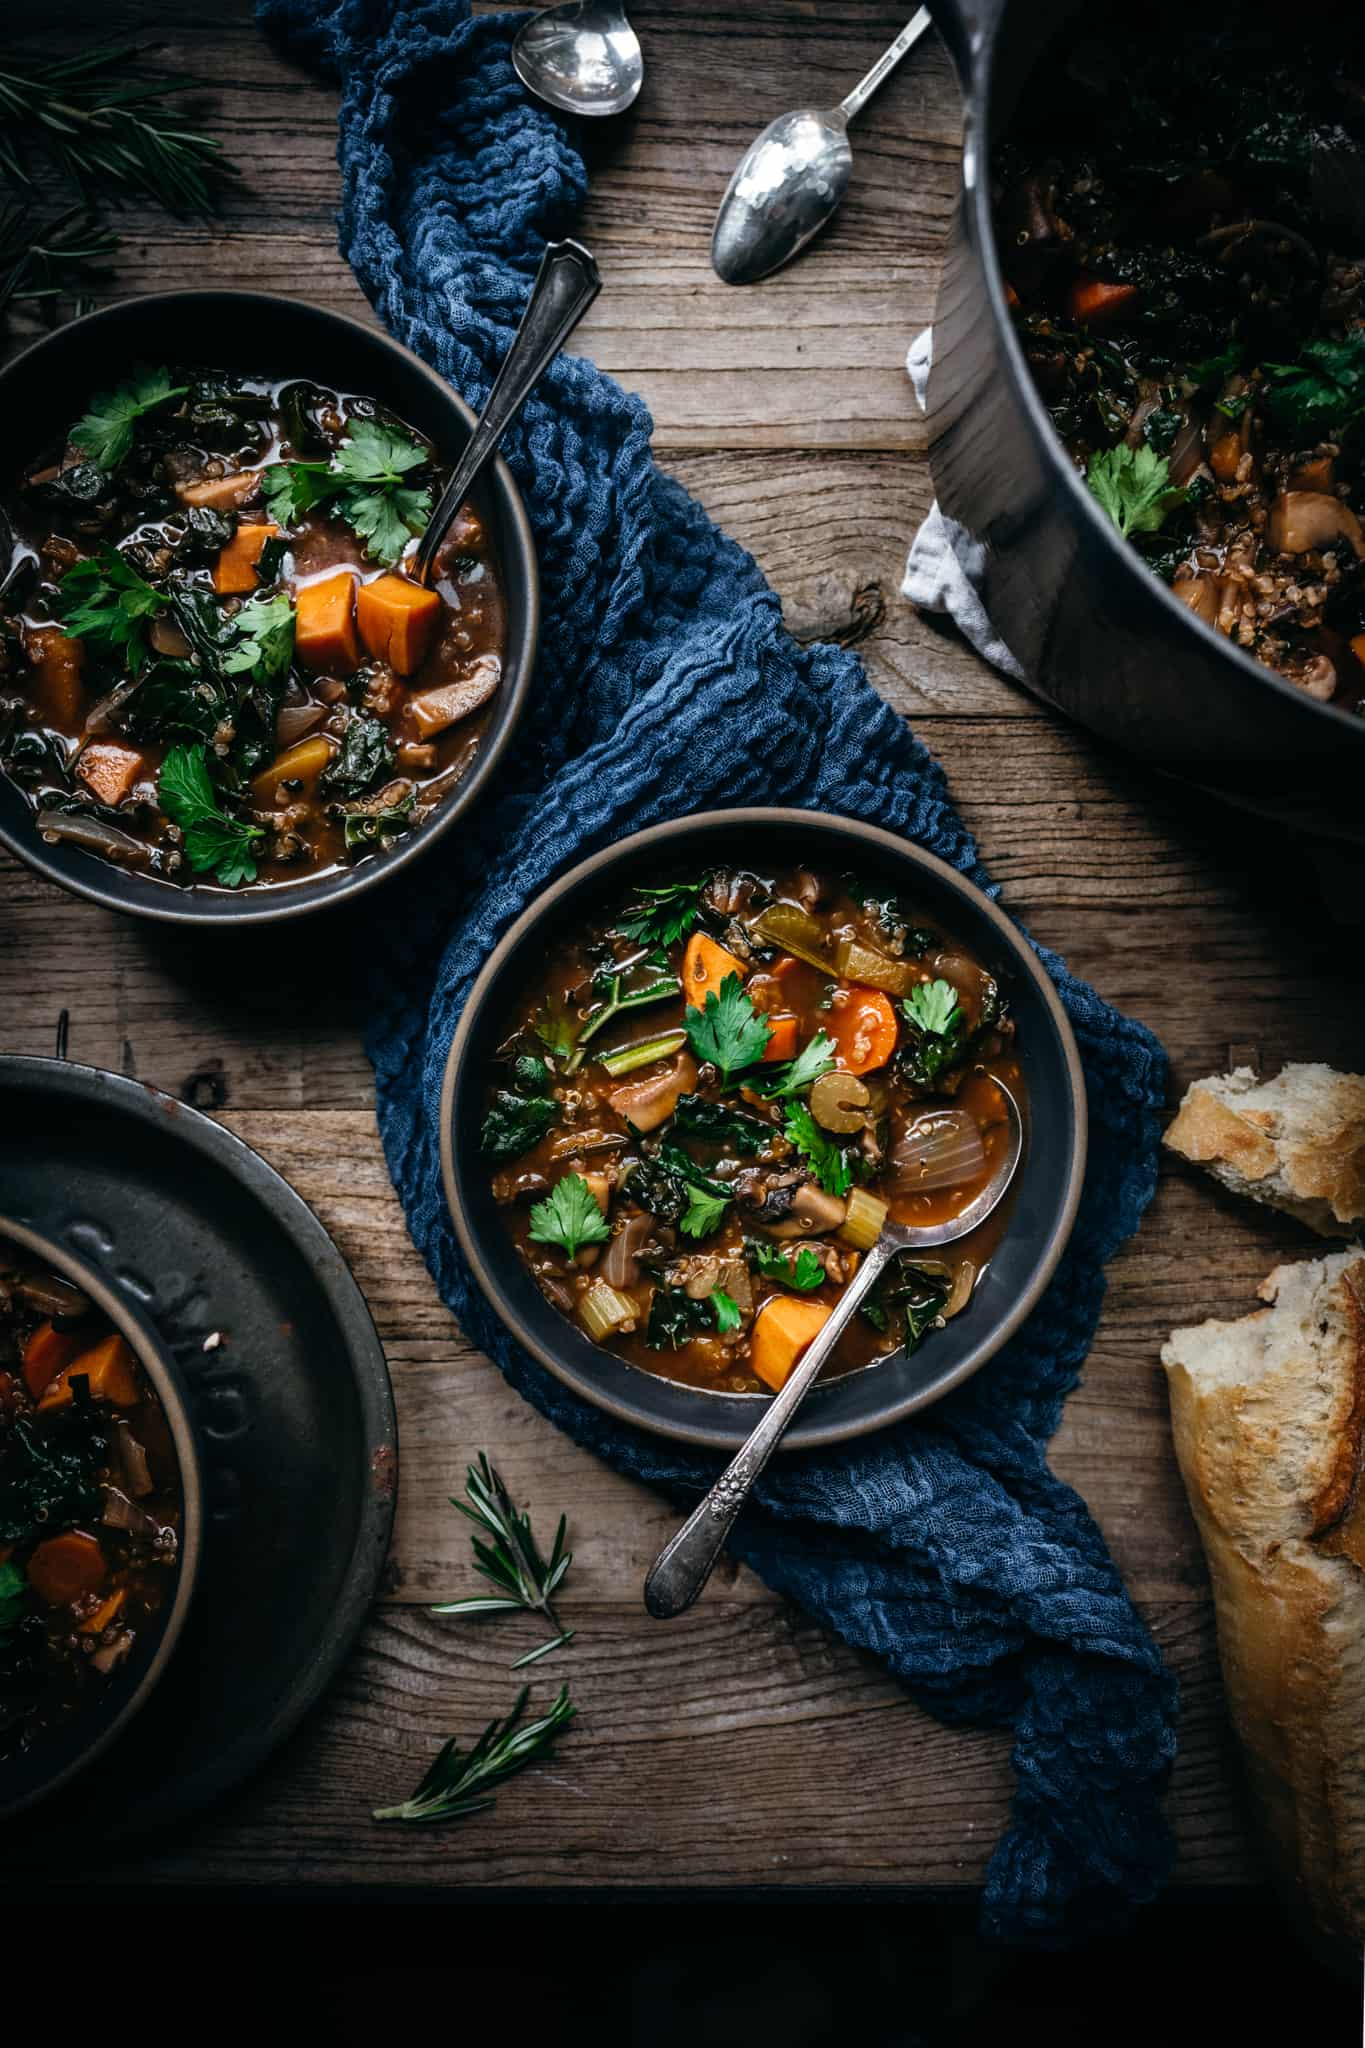 overhead view of 2 bowls of quinoa vegetable stew on wood table